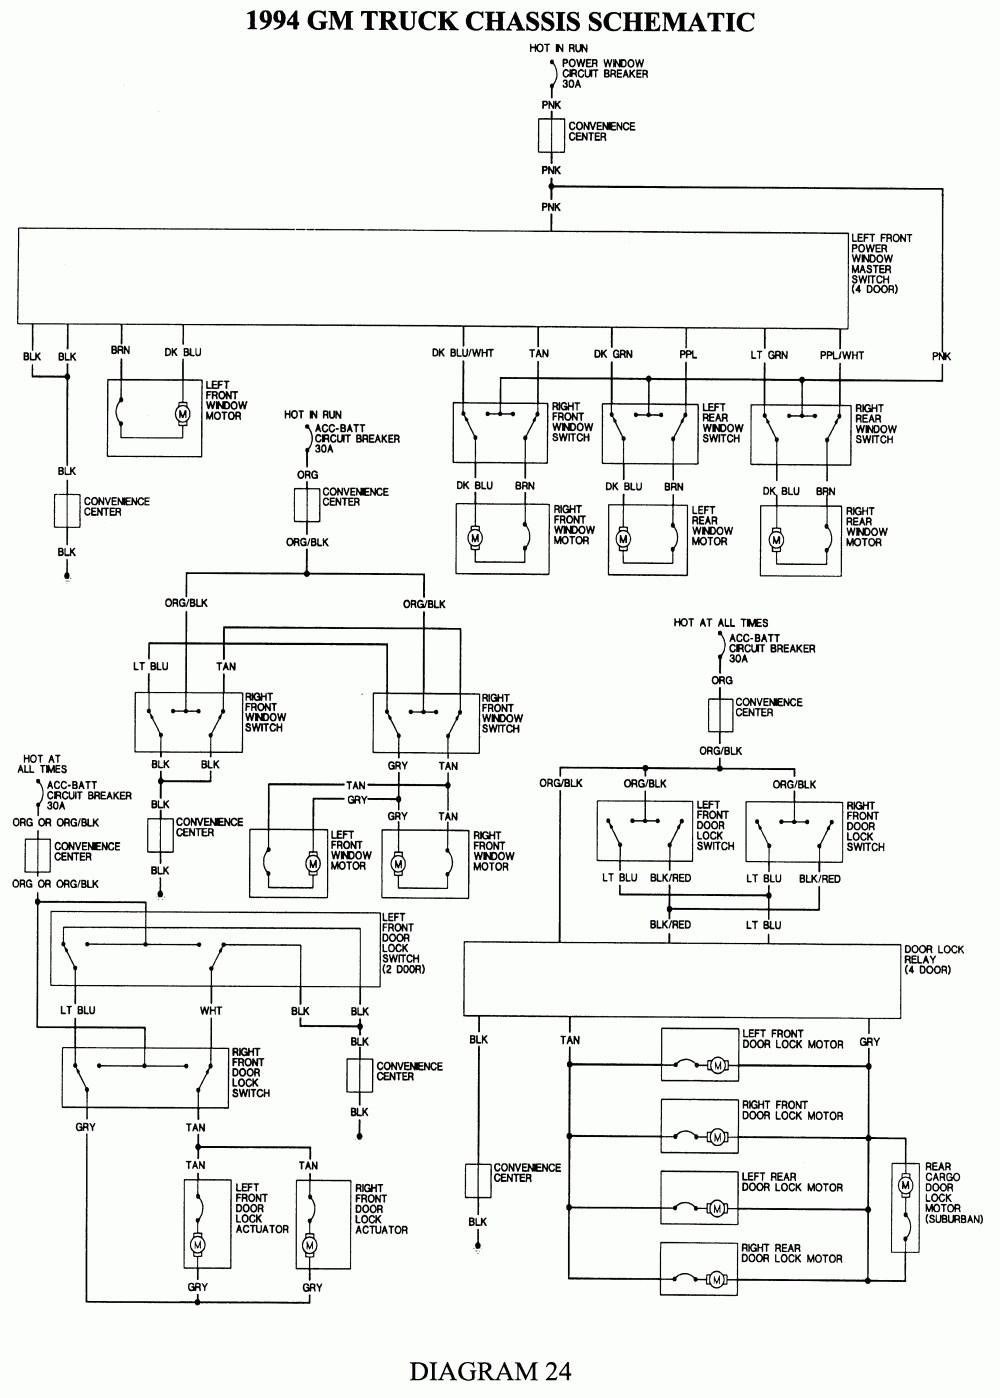 1998 Chevy Silverado Wiring Diagram | Free Wiring Diagram